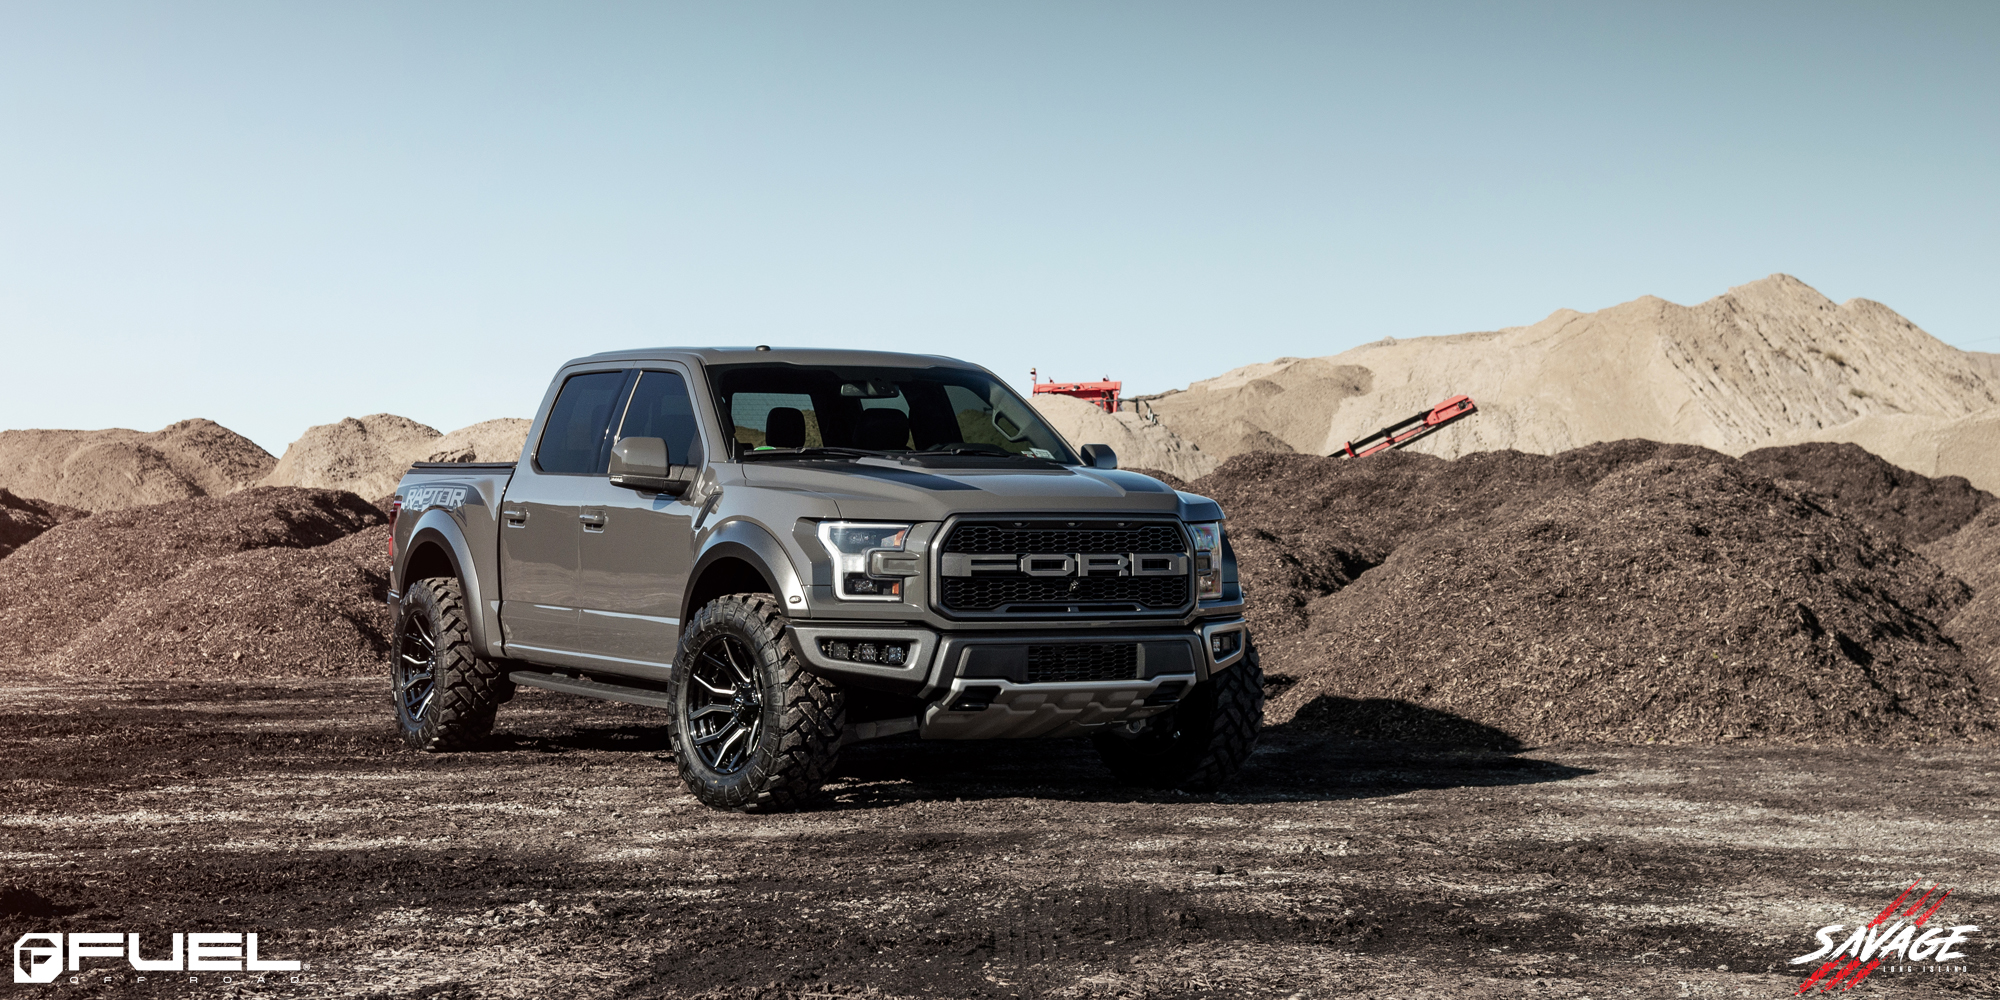 Ford F-150 Rage - D711 Gallery - Fuel Off-Road Wheels